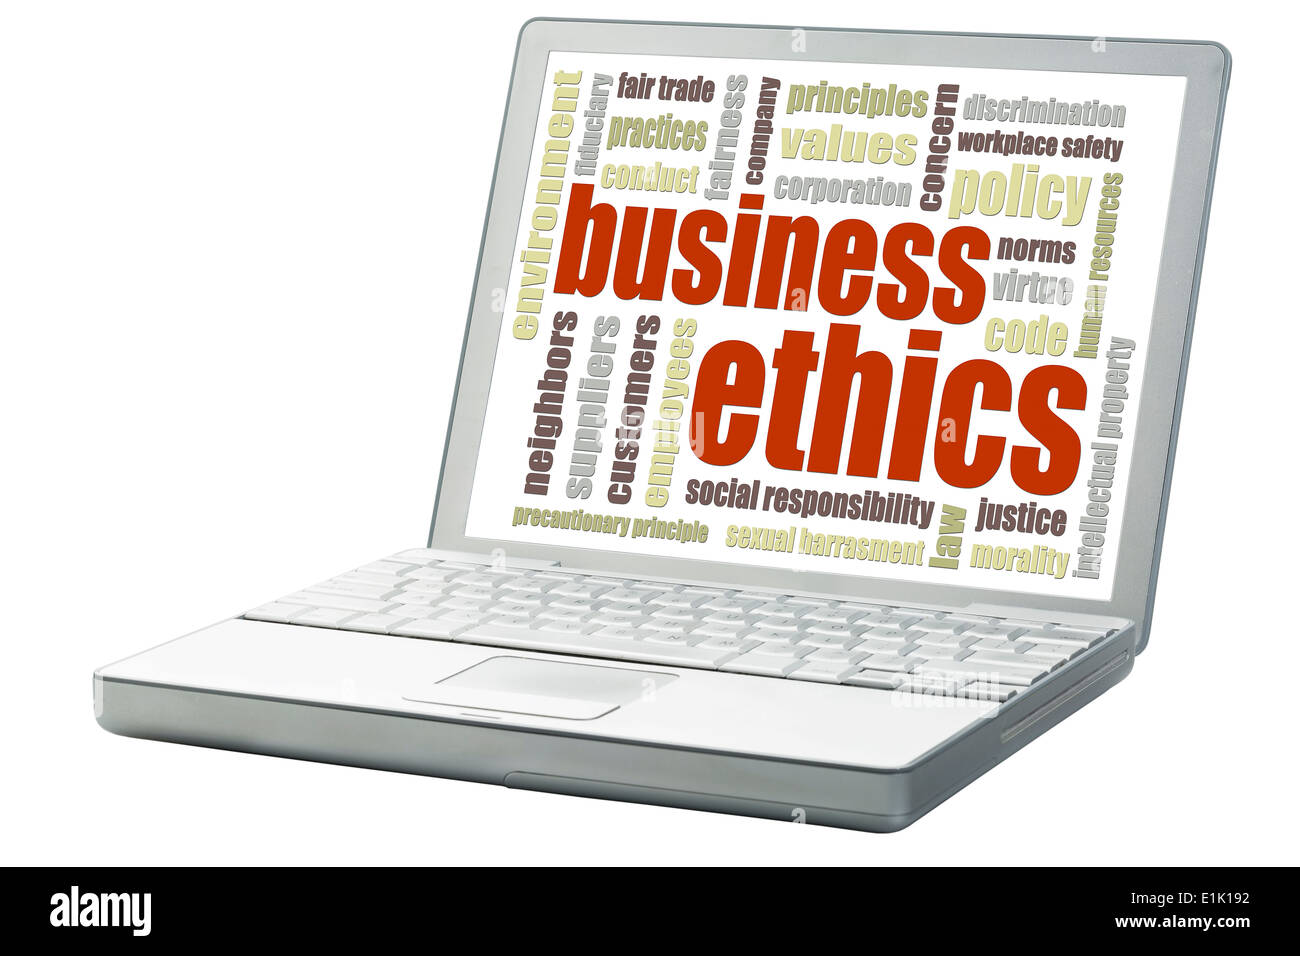 business ethics concept - a related word cloud on an isolated laptop - Stock Image